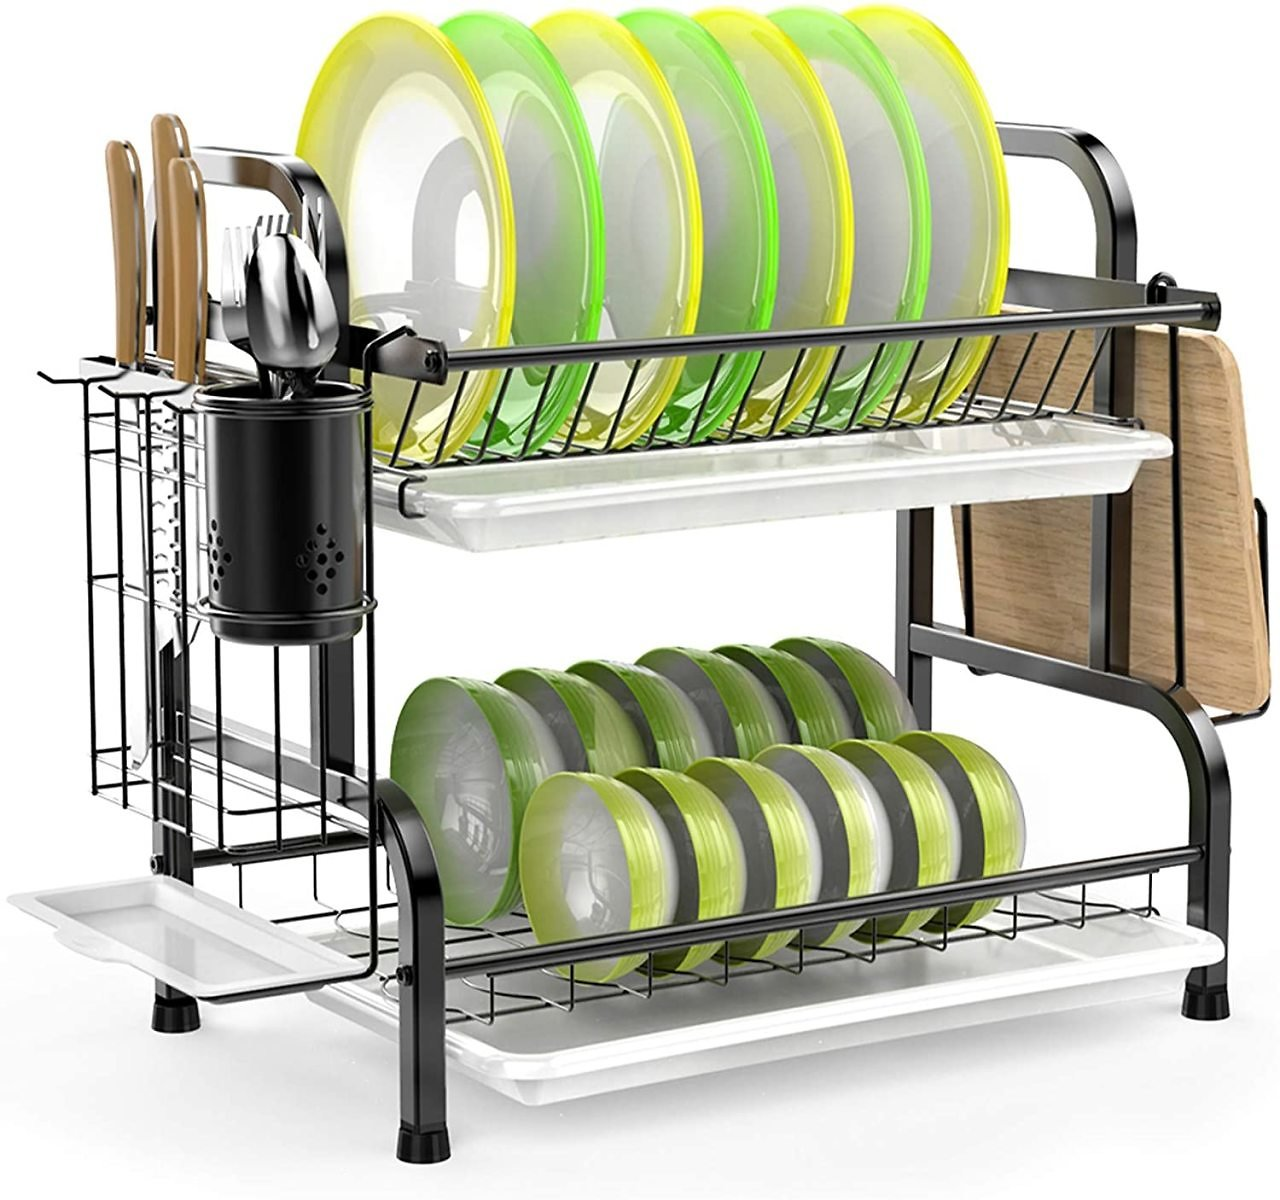 Stainless Steel 2-Tier Dish Drying Rack